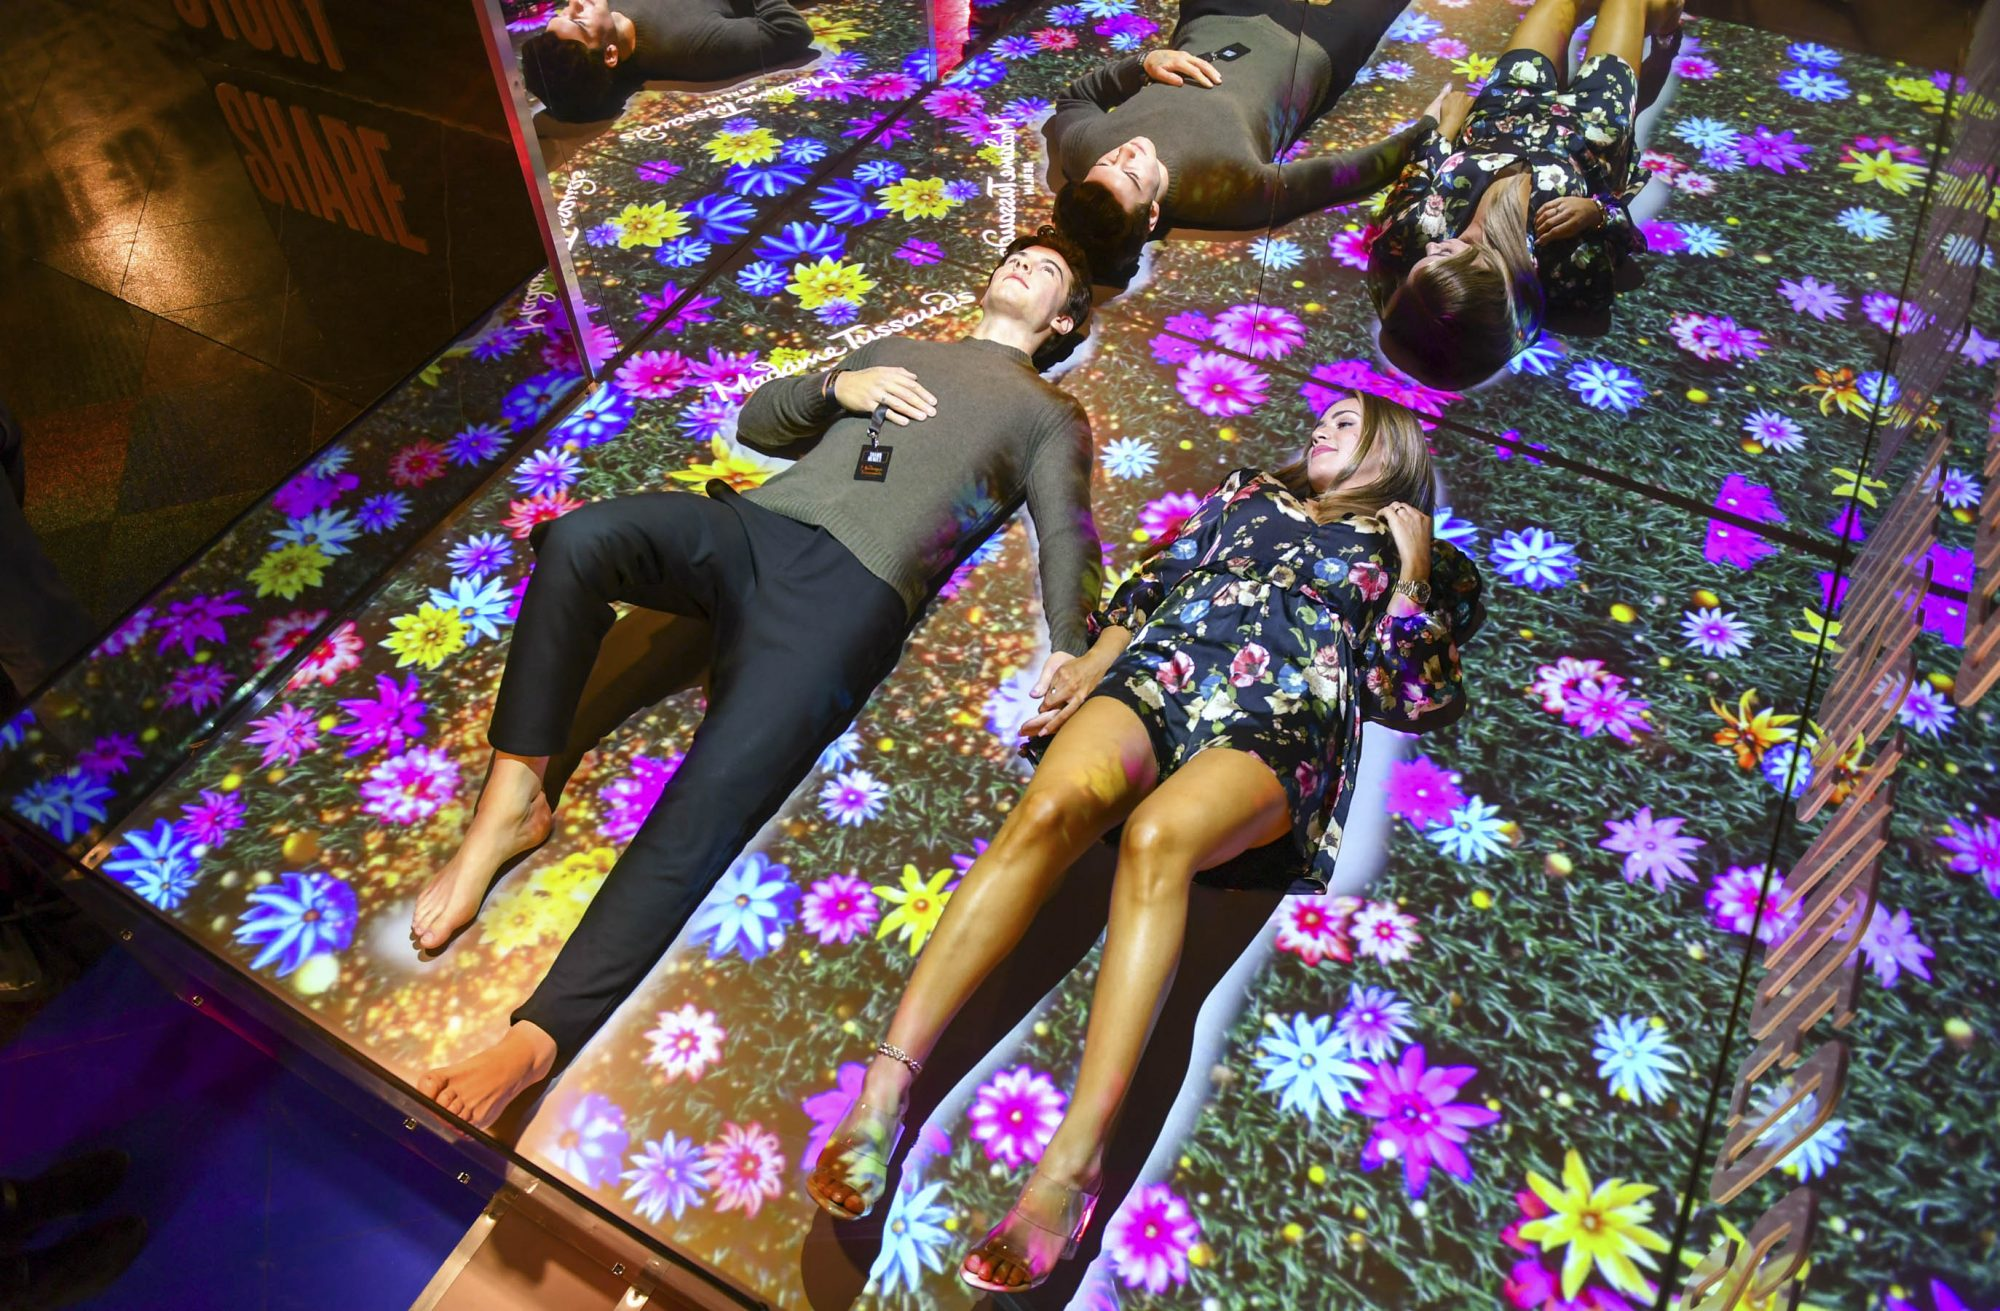 """14 August 2019, Berlin: Bachelorette Jessica Paszka lies next to the wax figure of the singer Shawn Mendes in the wax figure cabinet Madame Tussauds. The wax figure of Mendes can now be seen here and fans can take photos with the figure. Shawn Mendes sings with """"Senorita"""" the summer hit of the year 2019. Photo: Jens Kalaene/dpa-Zentralbild/dpa (Photo by Jens Kalaene/picture alliance via Getty Images)"""